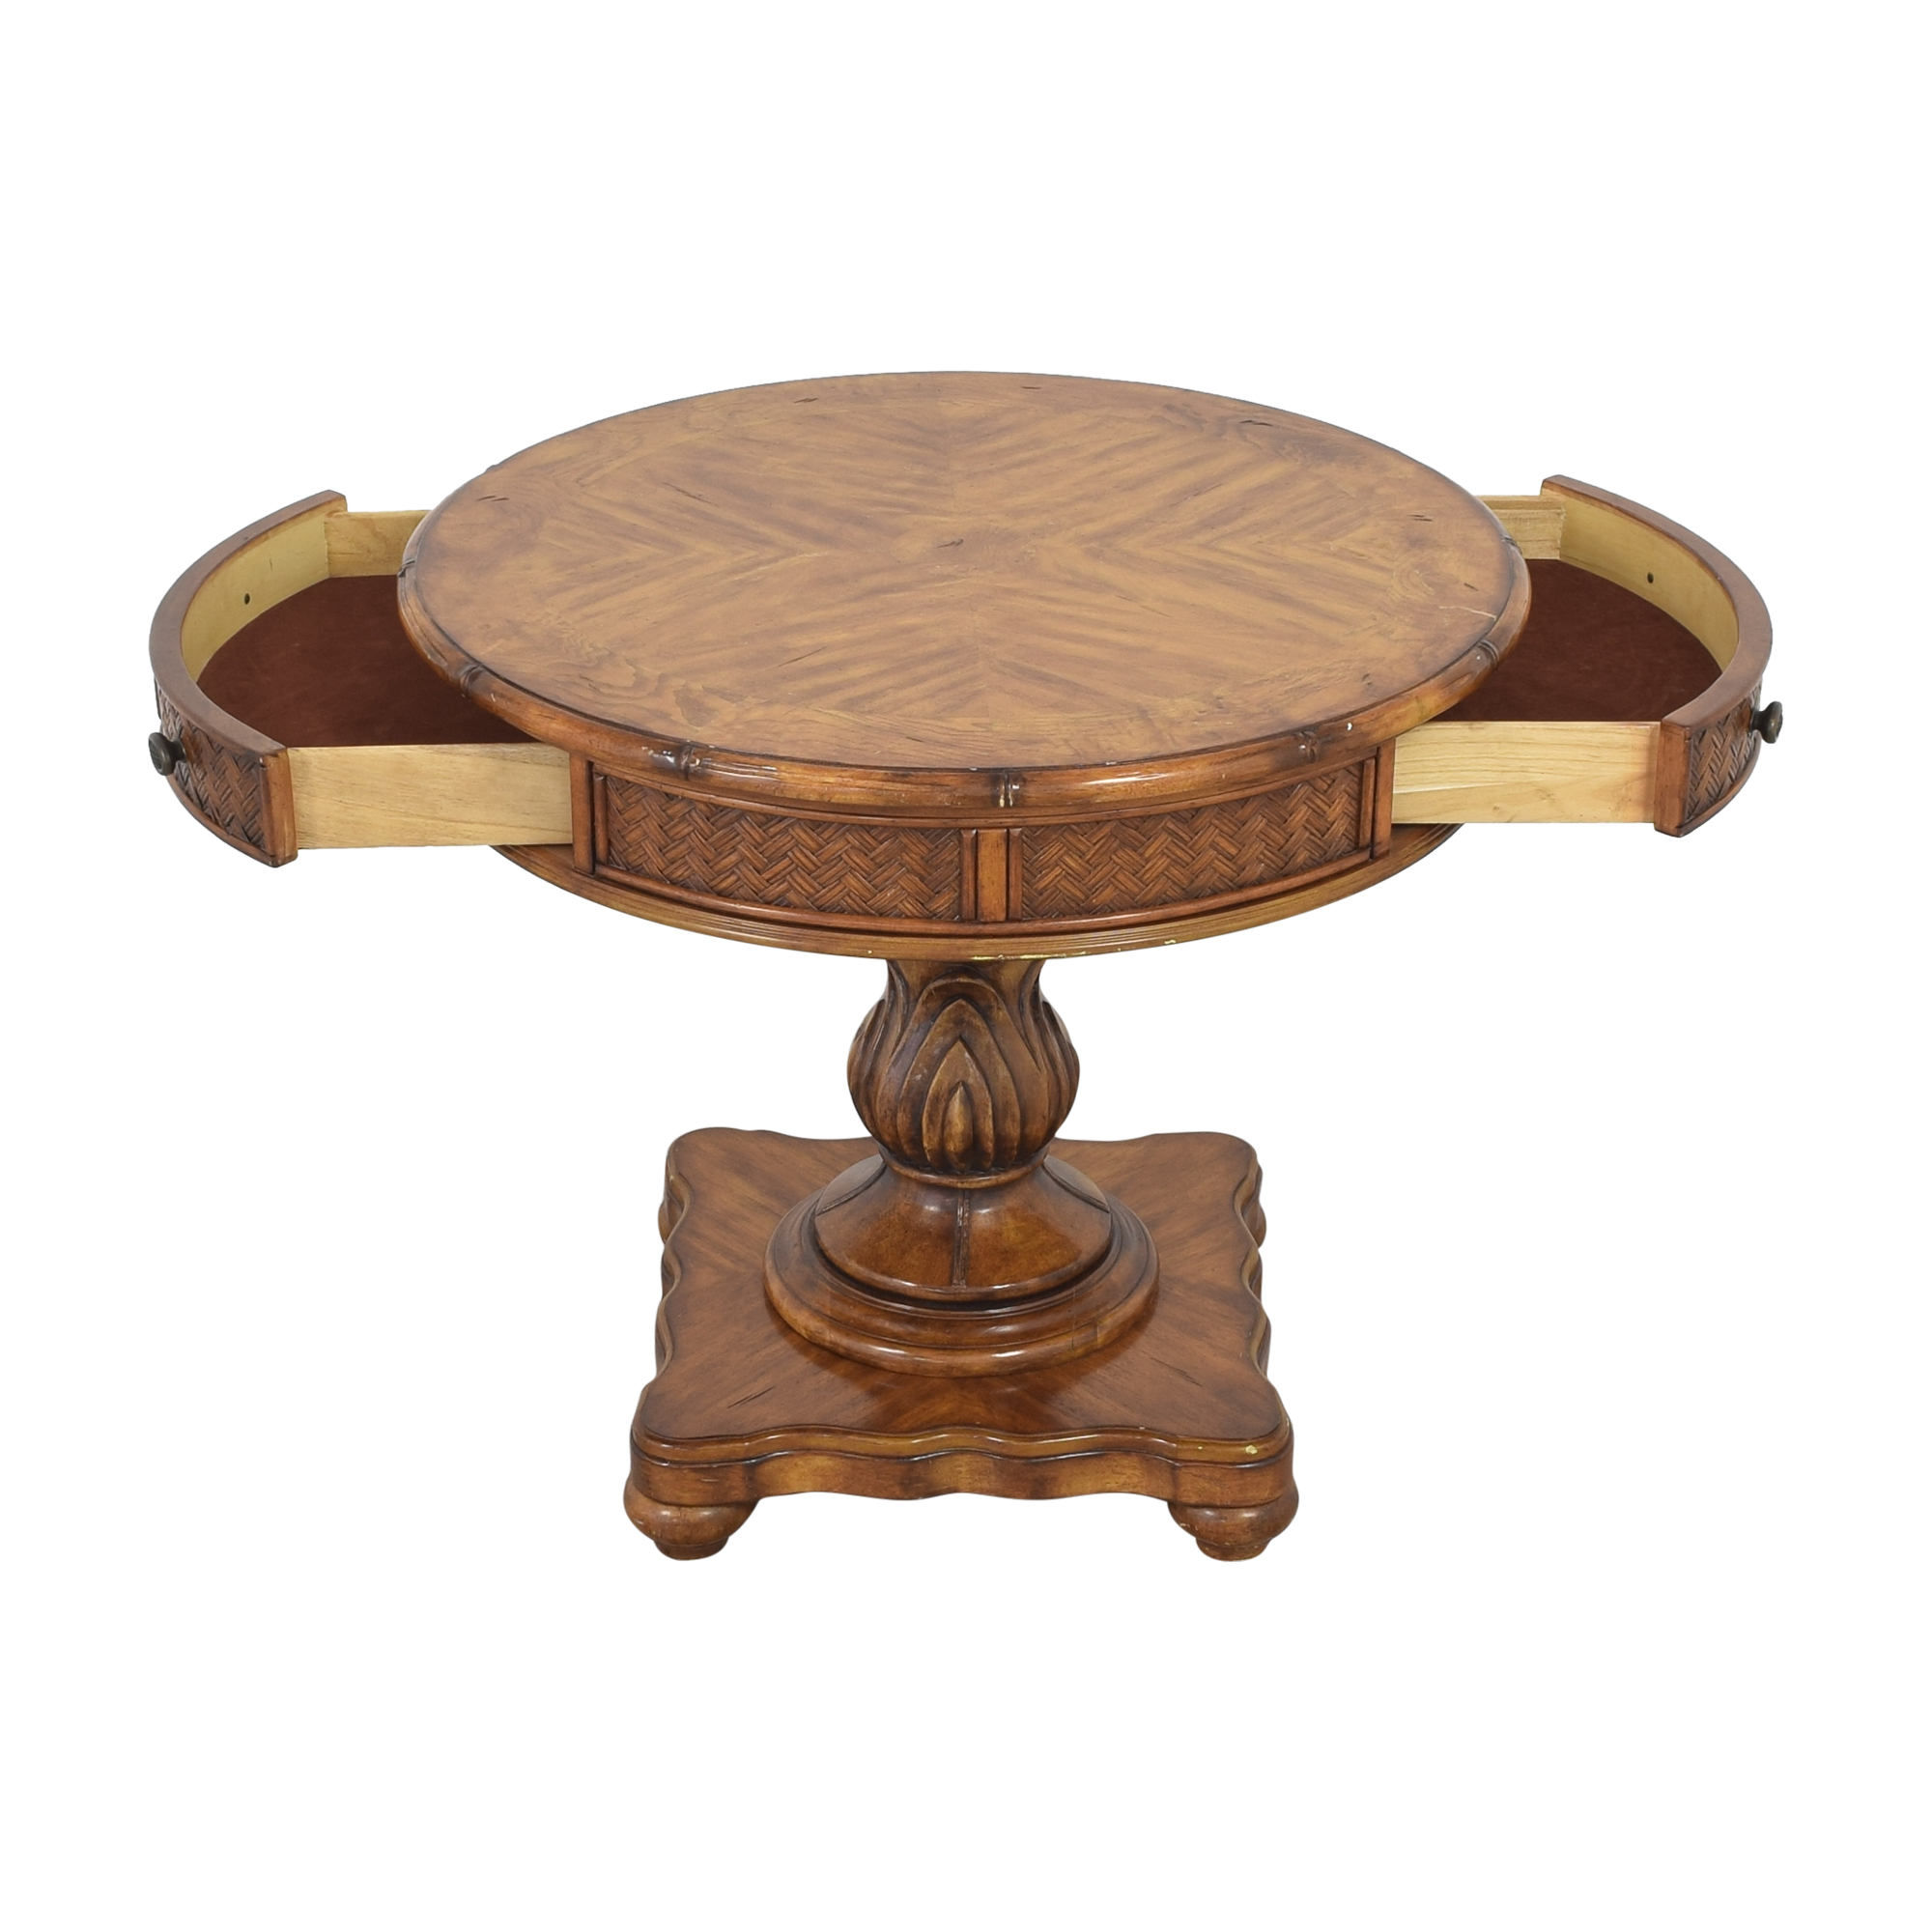 Schnadig Schnadig Round Accent Table ct